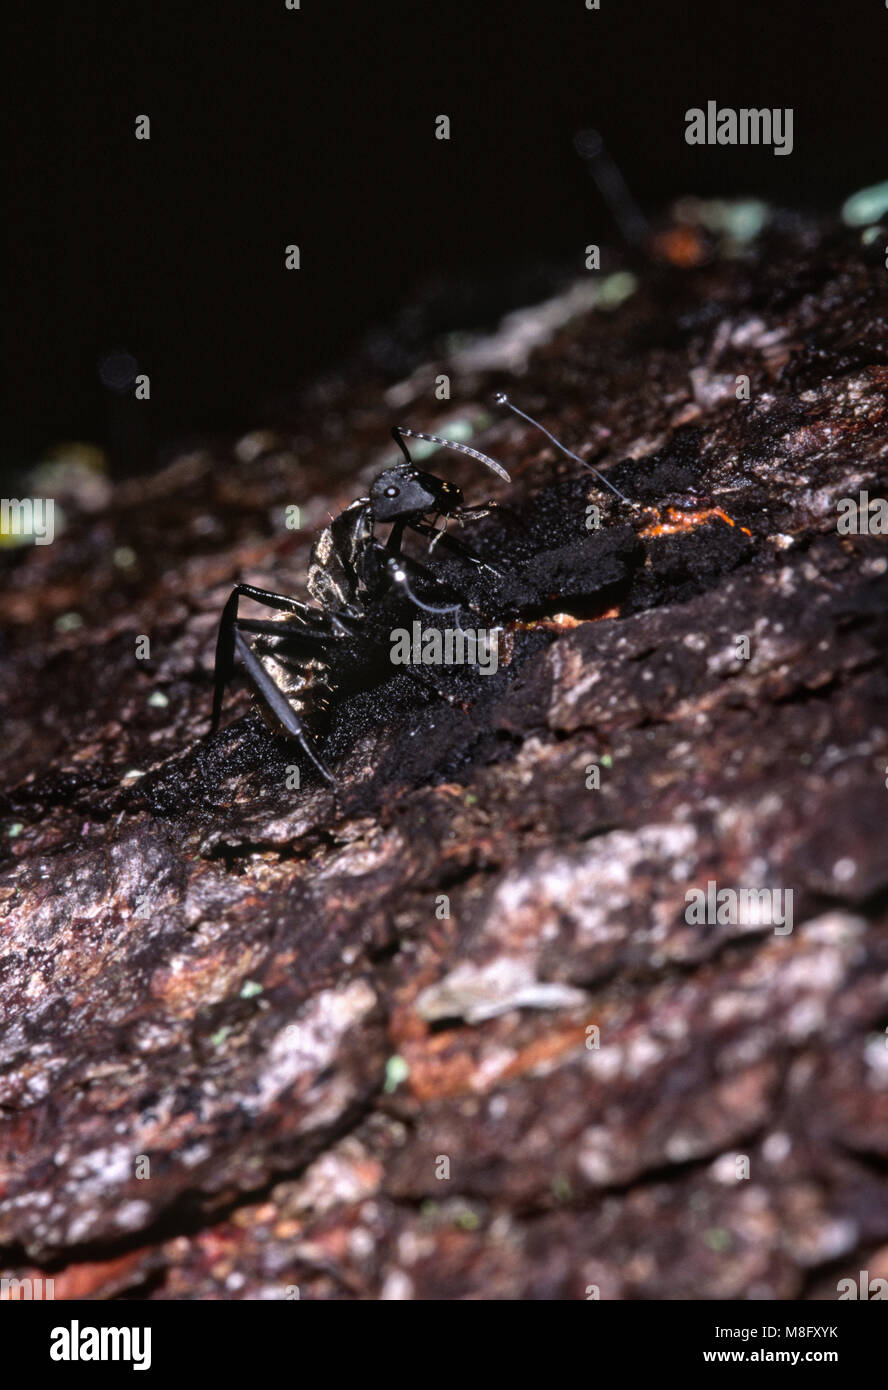 Golden carpenter ant (Camponotus sericeiventris) feeding on honeydew from scale insects (Stigmacoccus sp.) - Stock Image